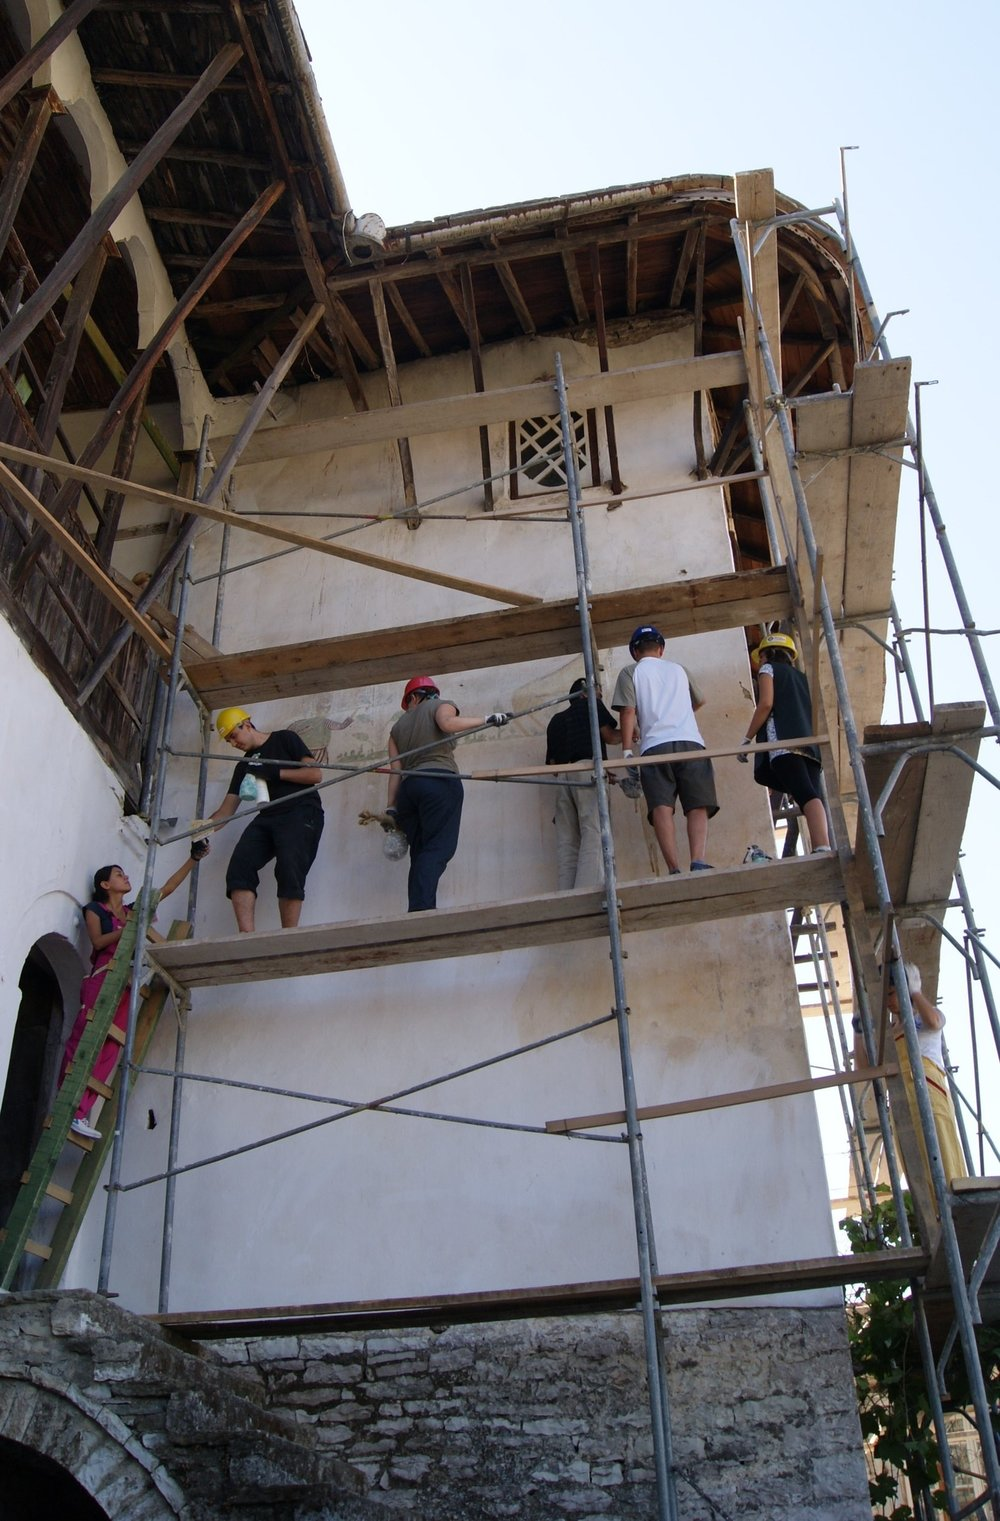 Put your hands on history – you'll be glad you did! - AiP jammers scrambled along scaffolding to document wall paintings at the massive stone tower house in old town Gjirokastra, a World Heritage site. Laser scanning proved an invaluable tool in documenting the artwork and discovering hidden images.Gjirokastra, Albania - September 2014